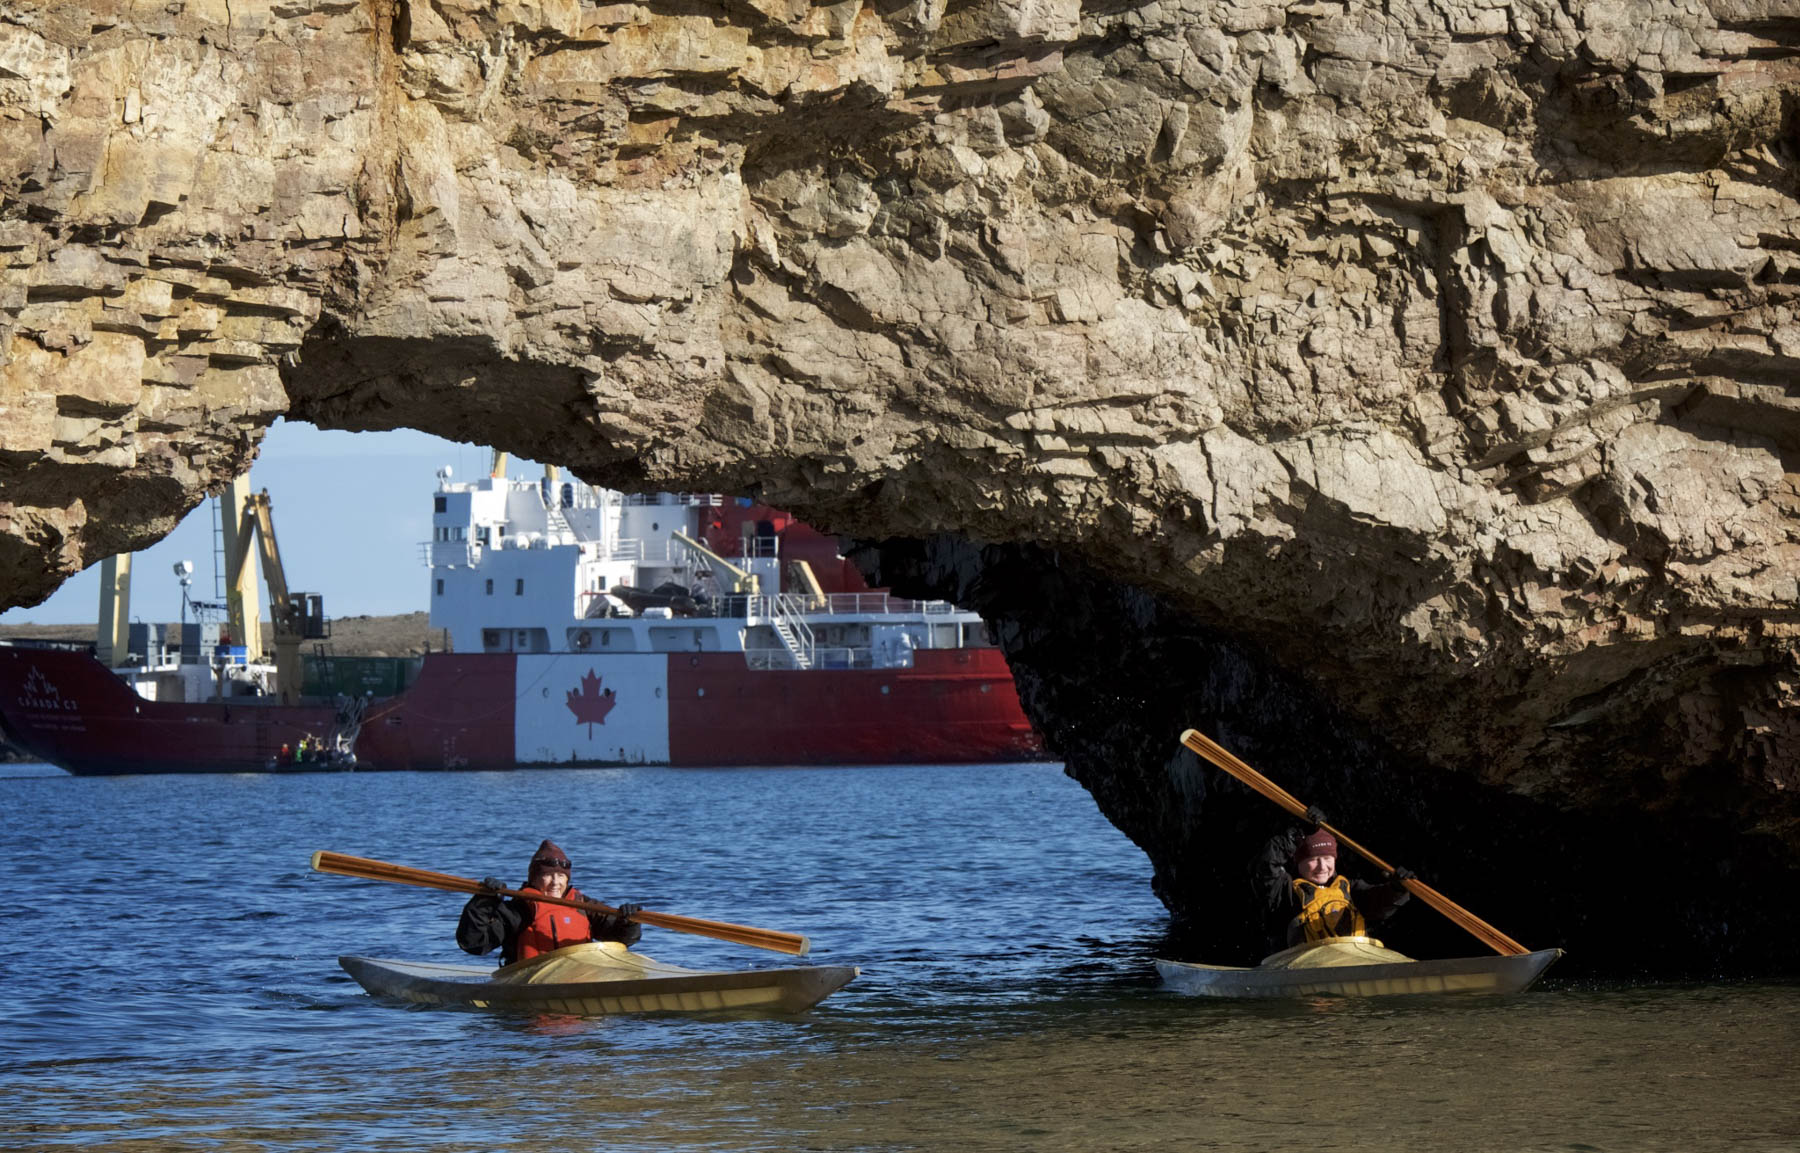 Their Excellencies used kayaks to explore Pierce Point which was once a camping site for scientists during the Canadian Arctic Expedition of 1913-1918. In 1922, a trading post was established, which the Hudson's Bay Company took over in 1927.